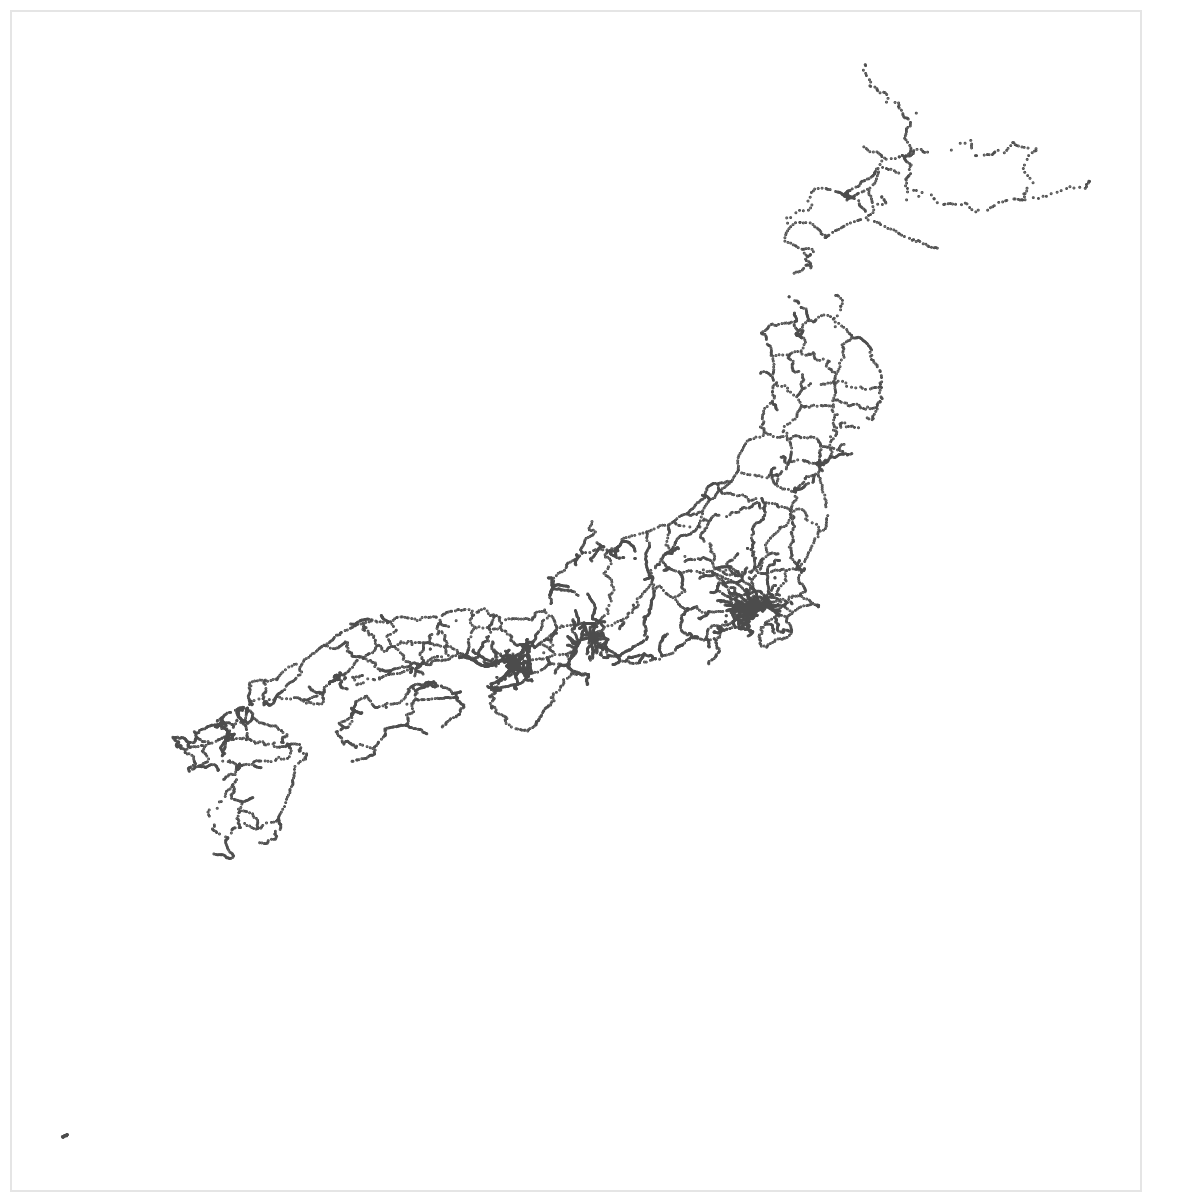 stations in Japan